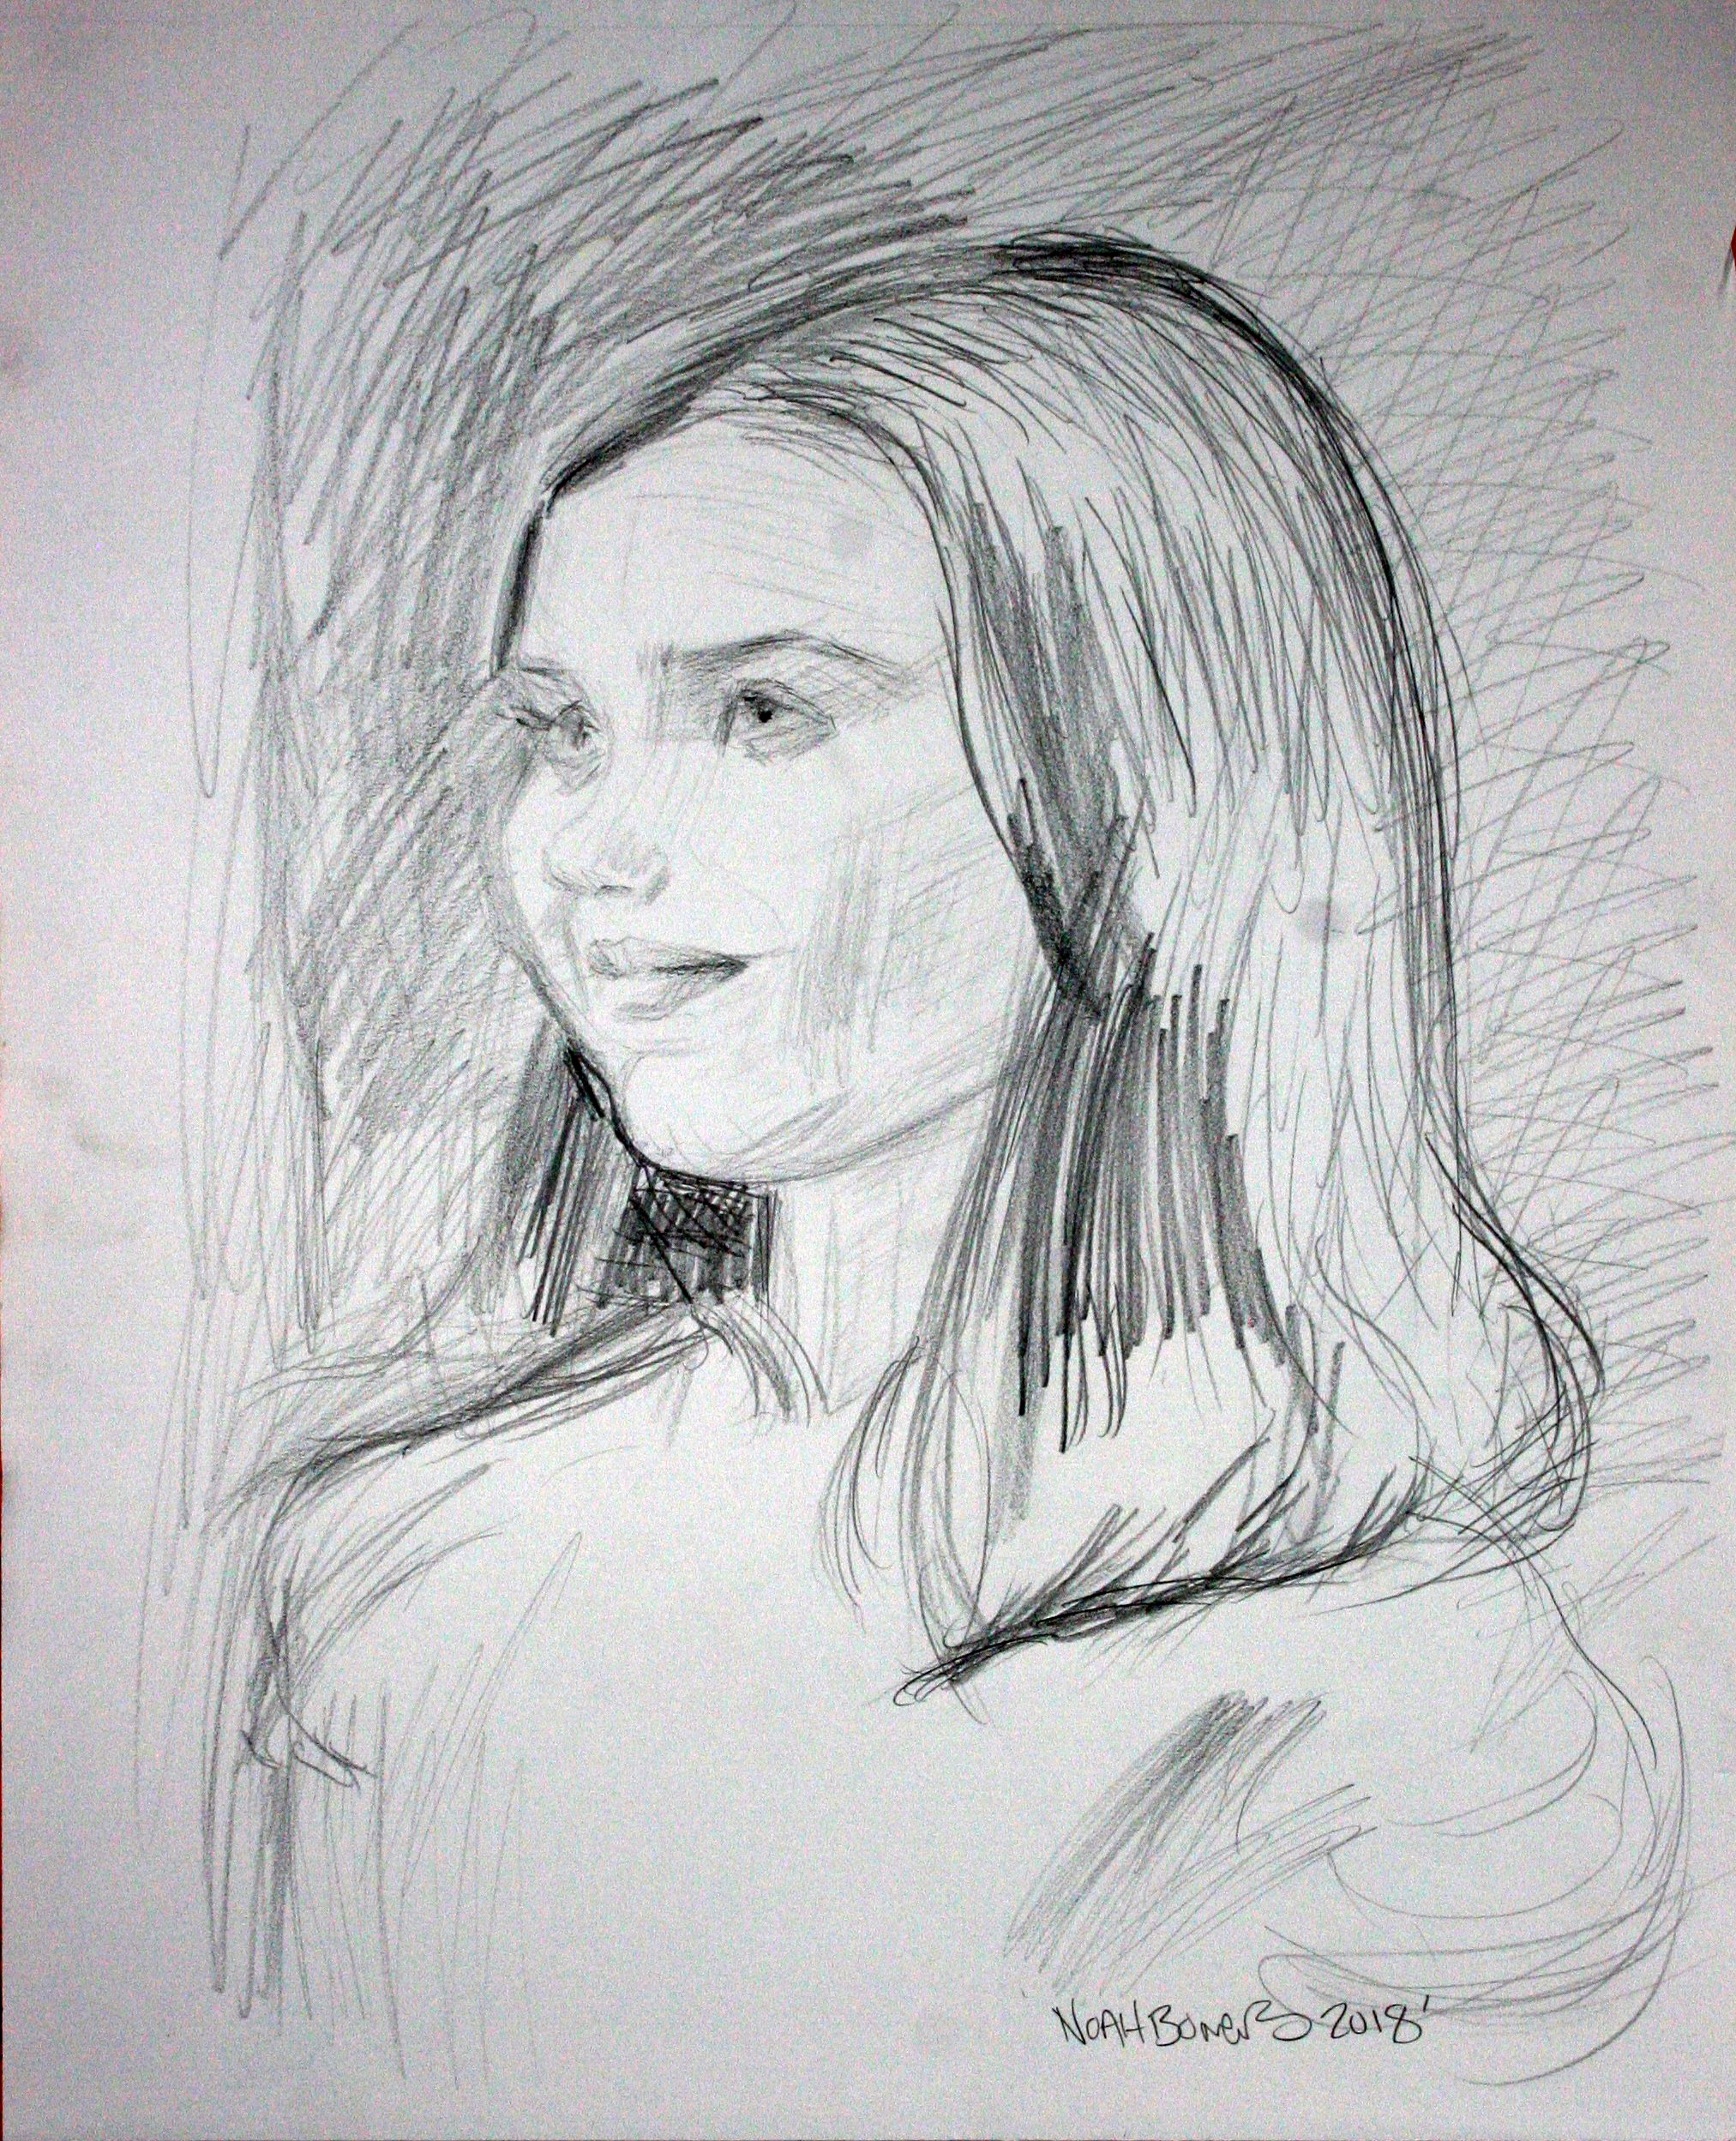 Noah Bowers did this drawing of Tillie.